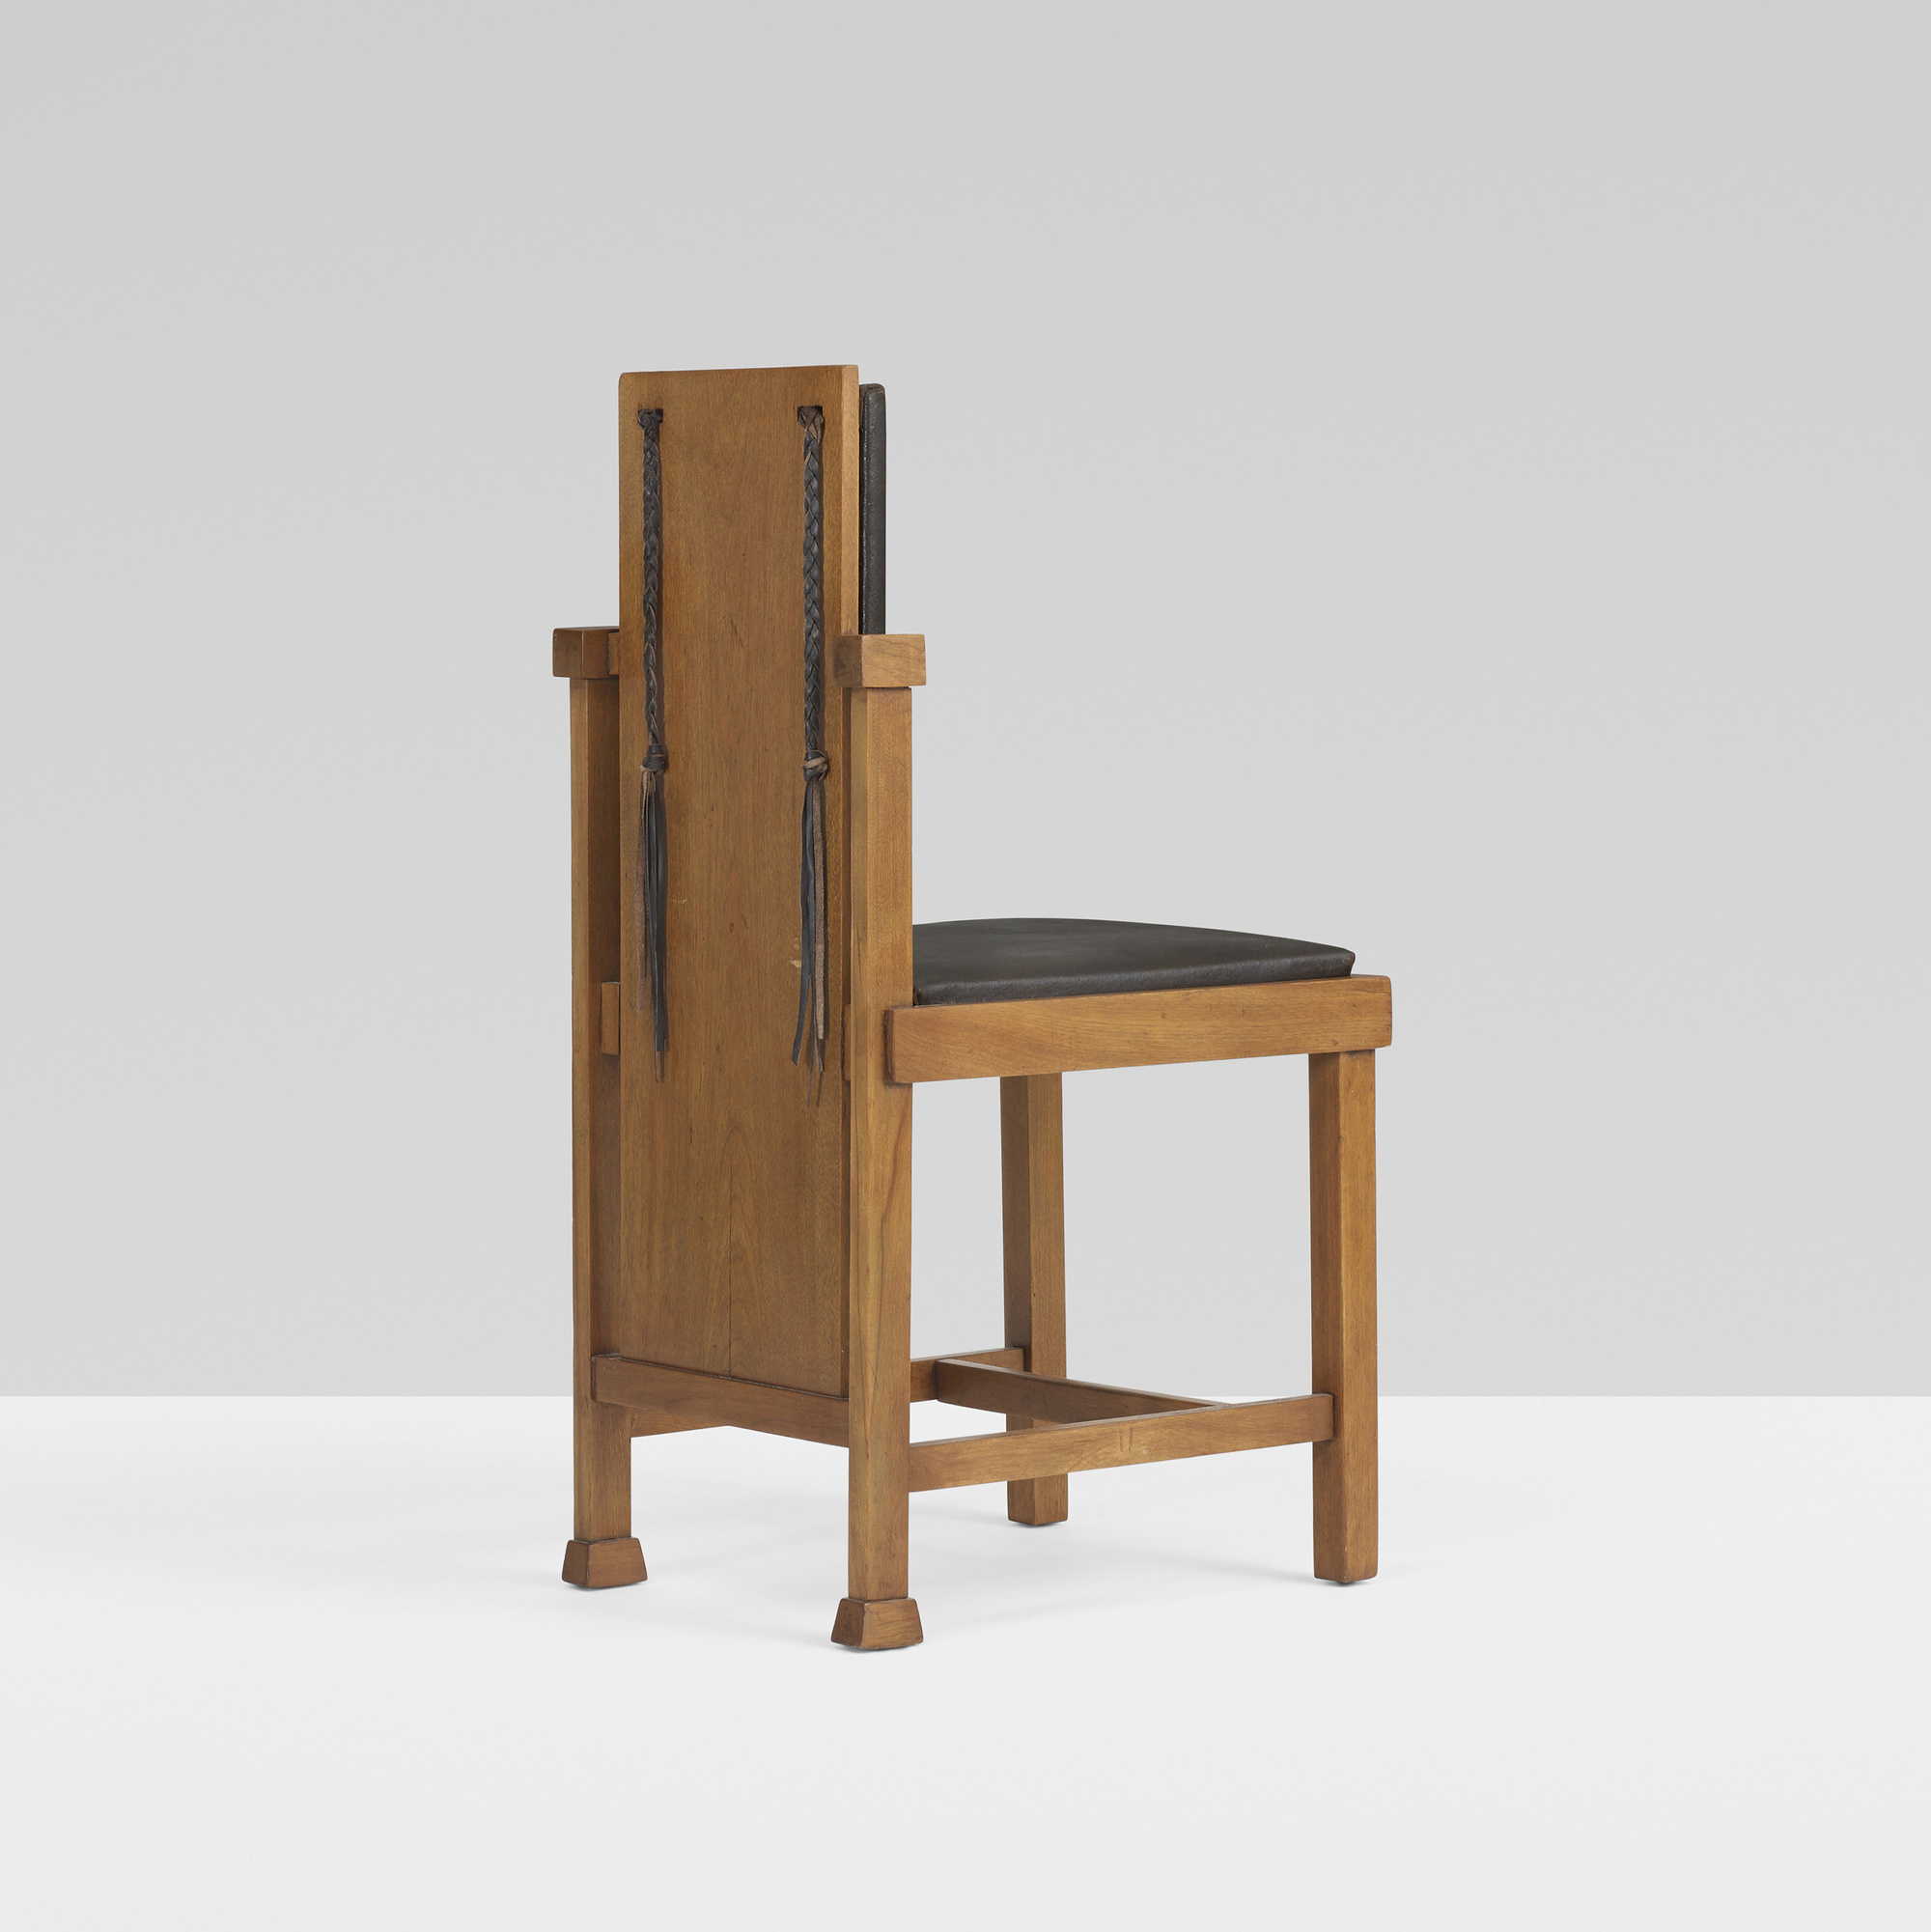 167 Frank Lloyd Wright Chair From The Avery Ley Playhouse Riverside Illinois